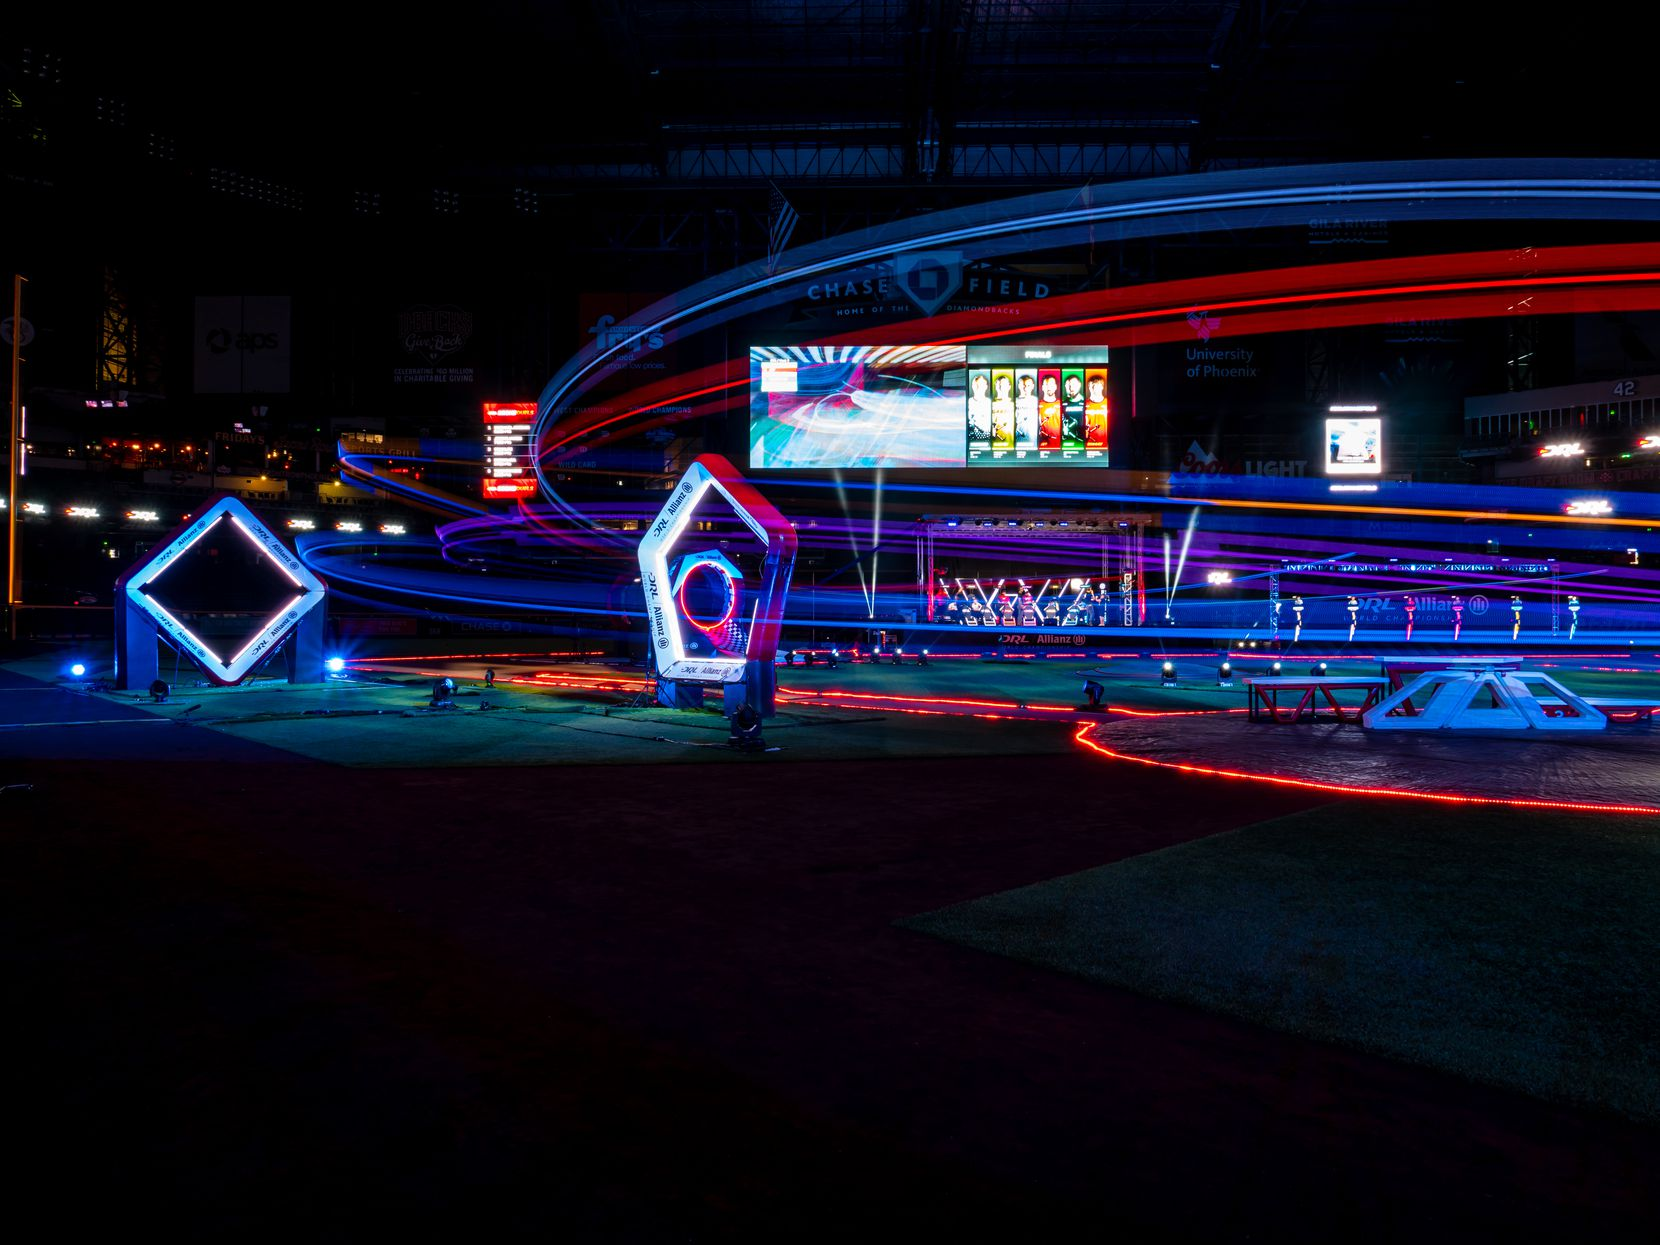 A look at a recent race setup at Chase Field in the Drone Racing League. Pilots will maneuver their drones around obstacles and through gates. (Courtesy/Drone Racing League)